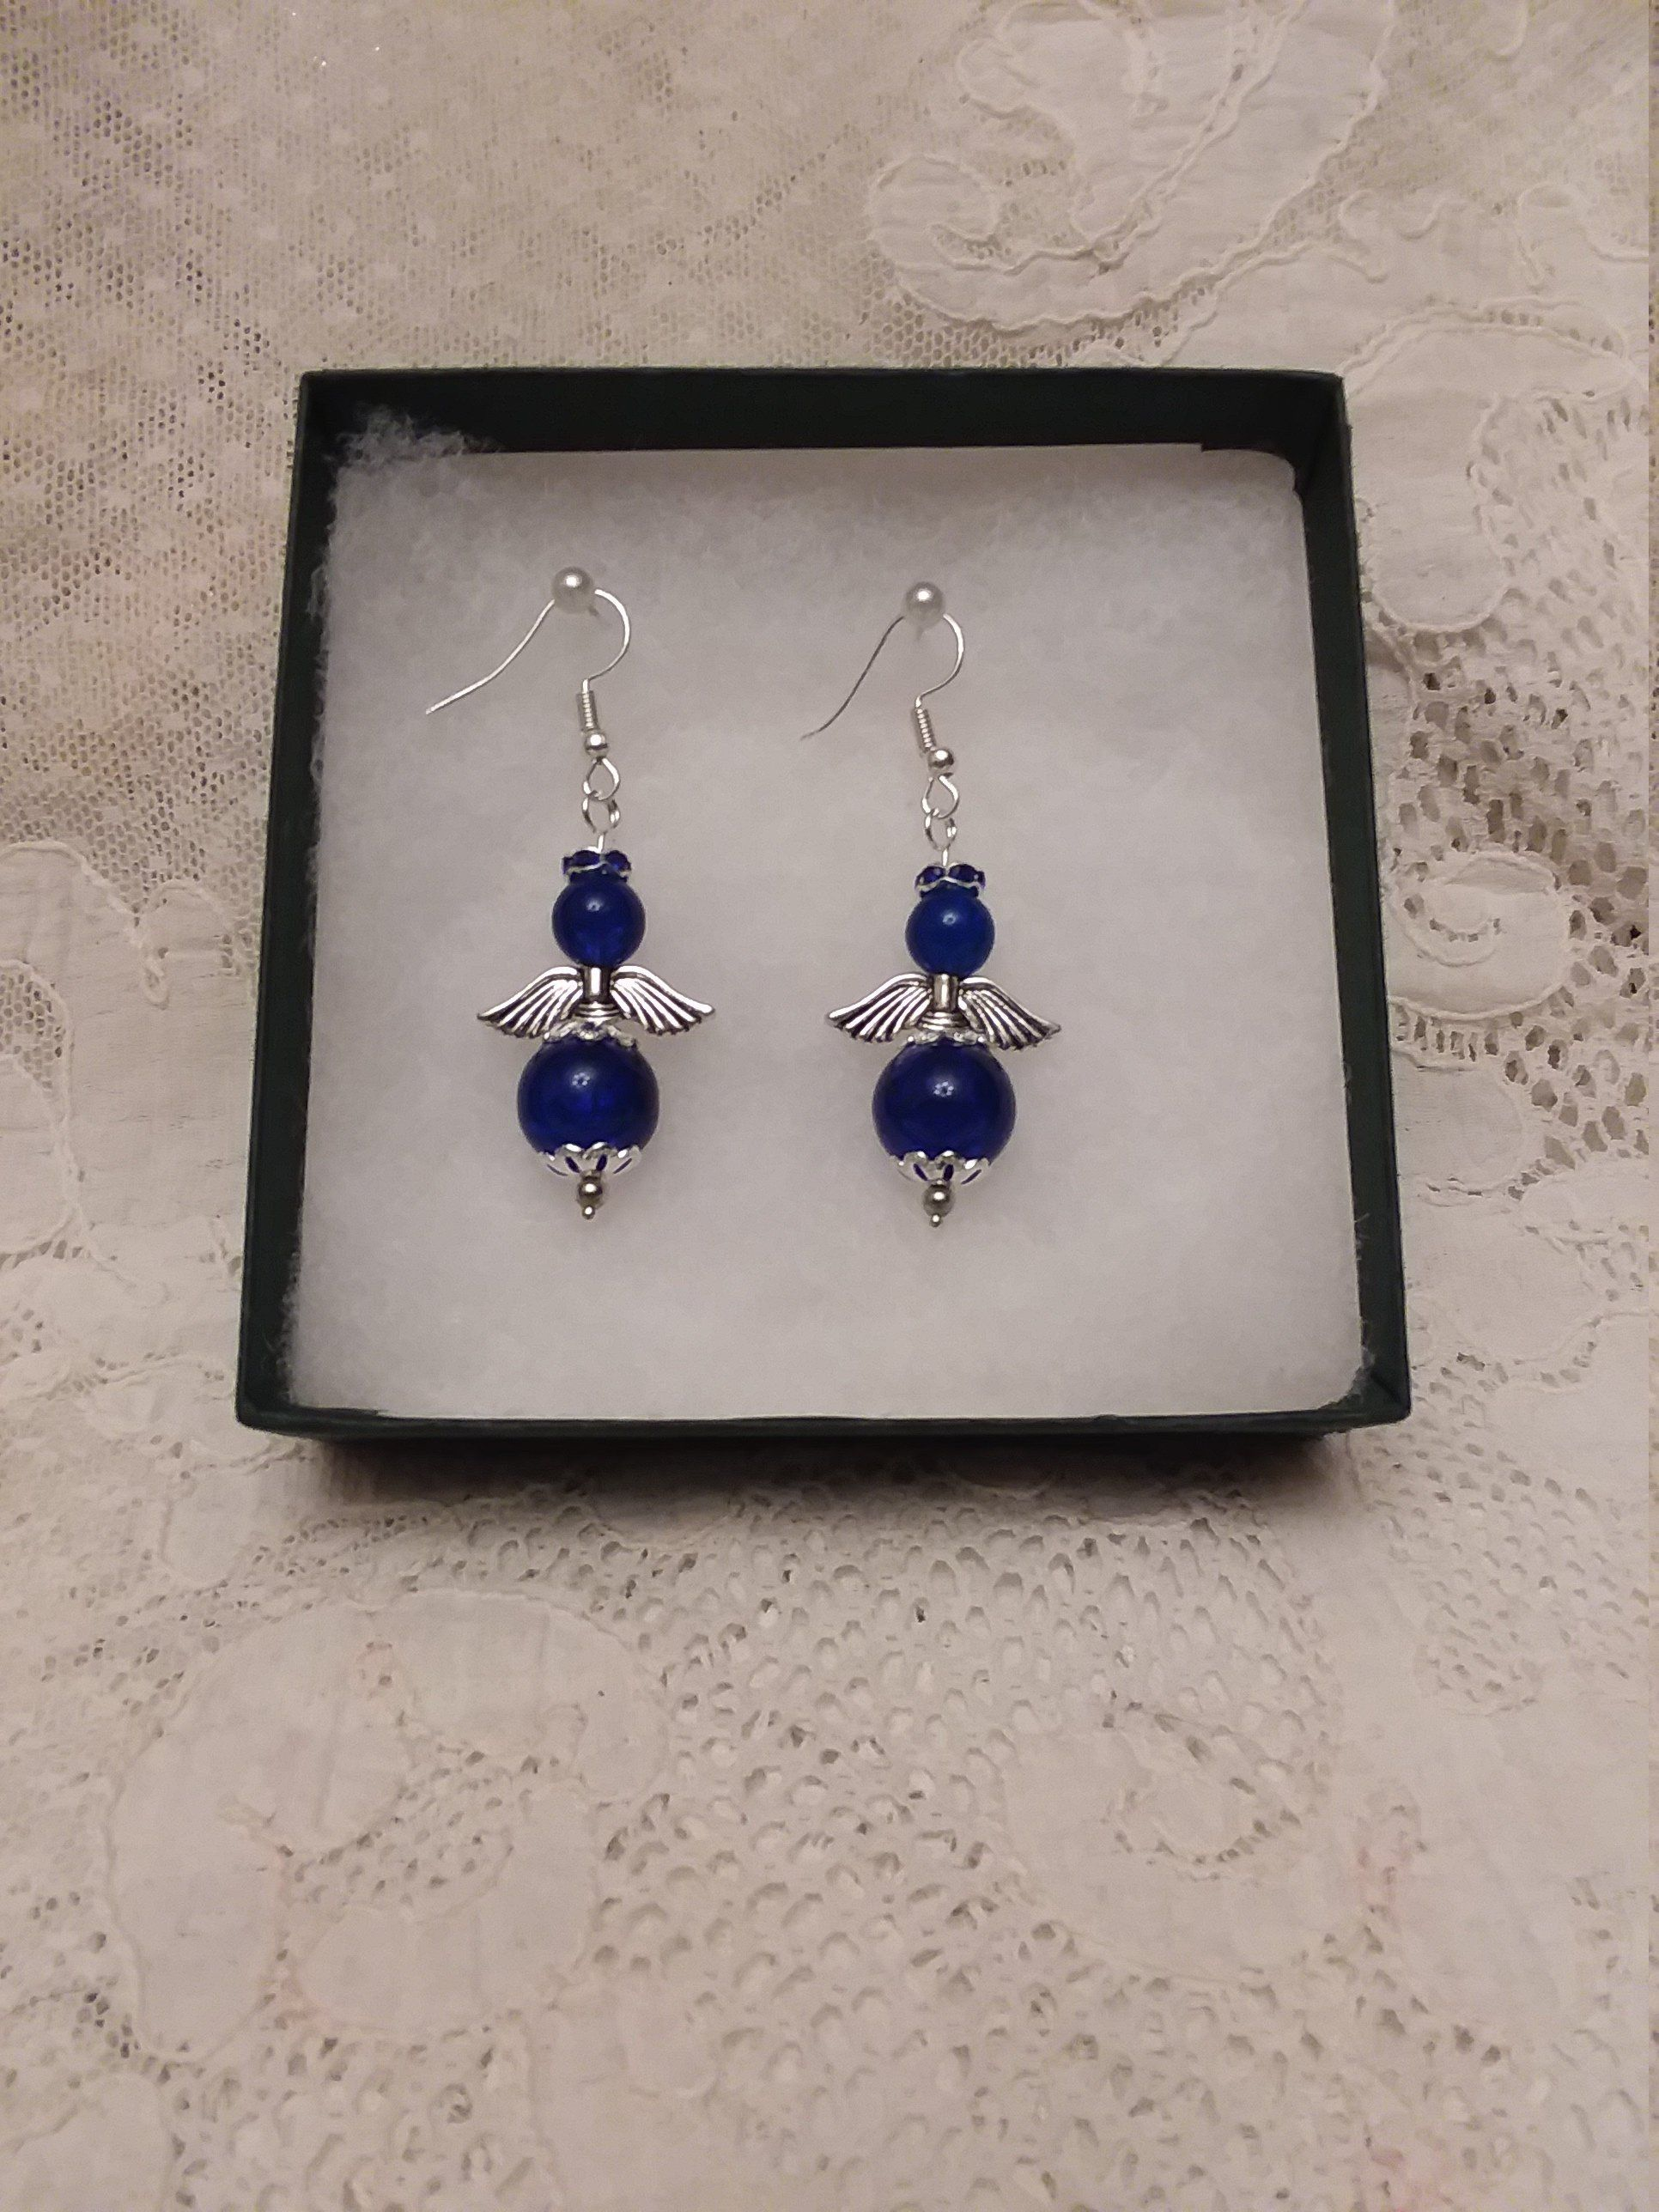 Unique Colbalt Blue Guardian Angel Earrings Handmade Gift Gift For